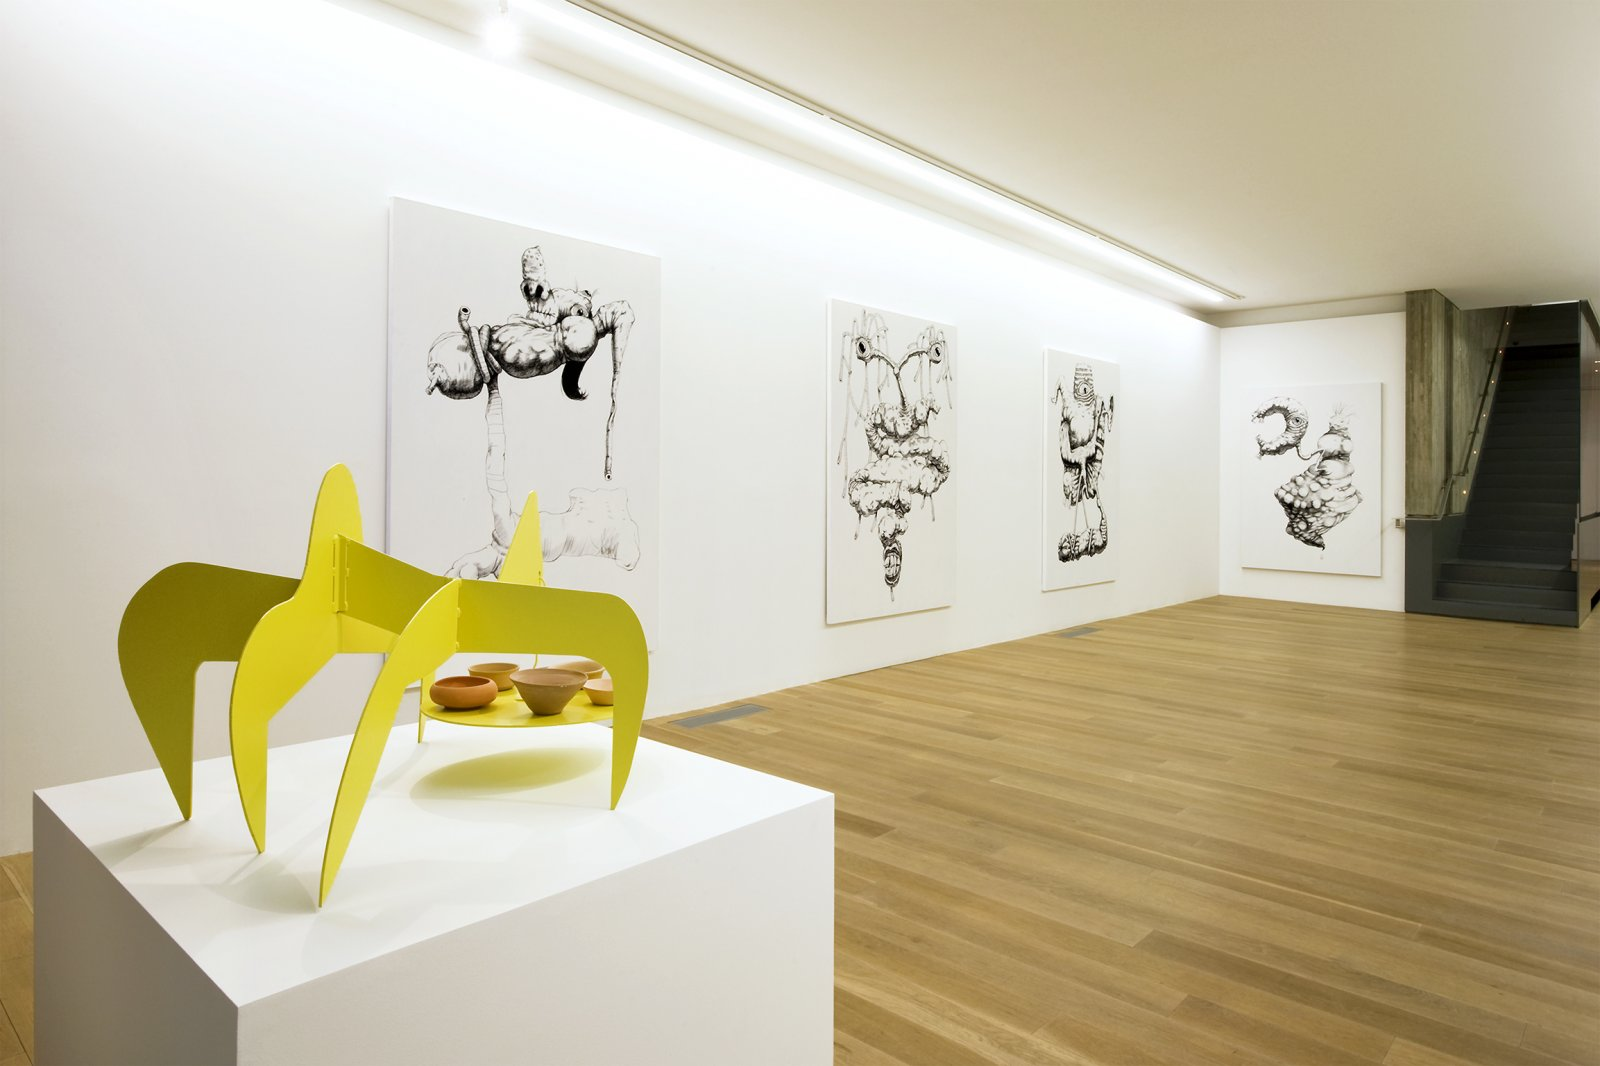 Damian Moppett, installation view, Rennie Museum, Vancouver, 2011 by Damian Moppett